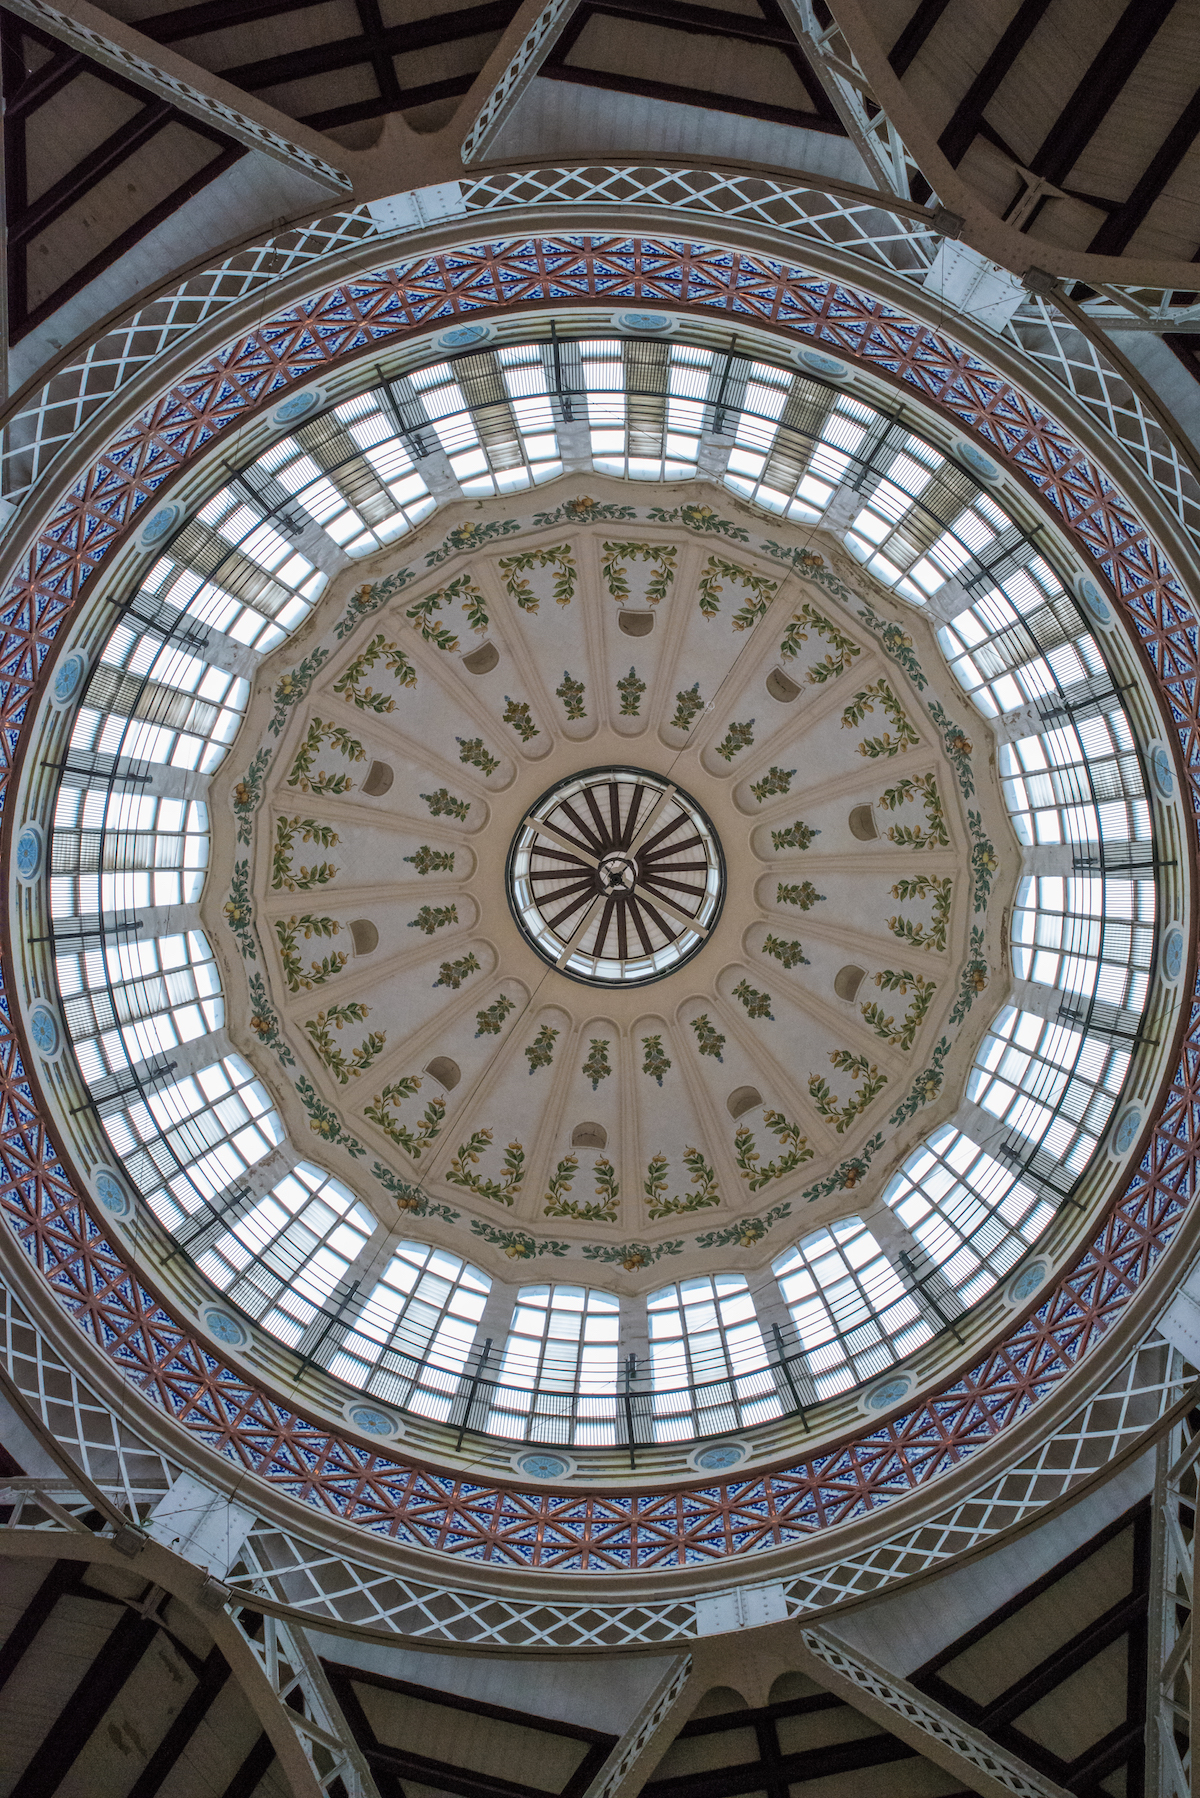 Valencia's Central Market Art Deco Dome - by Ben Holbrook